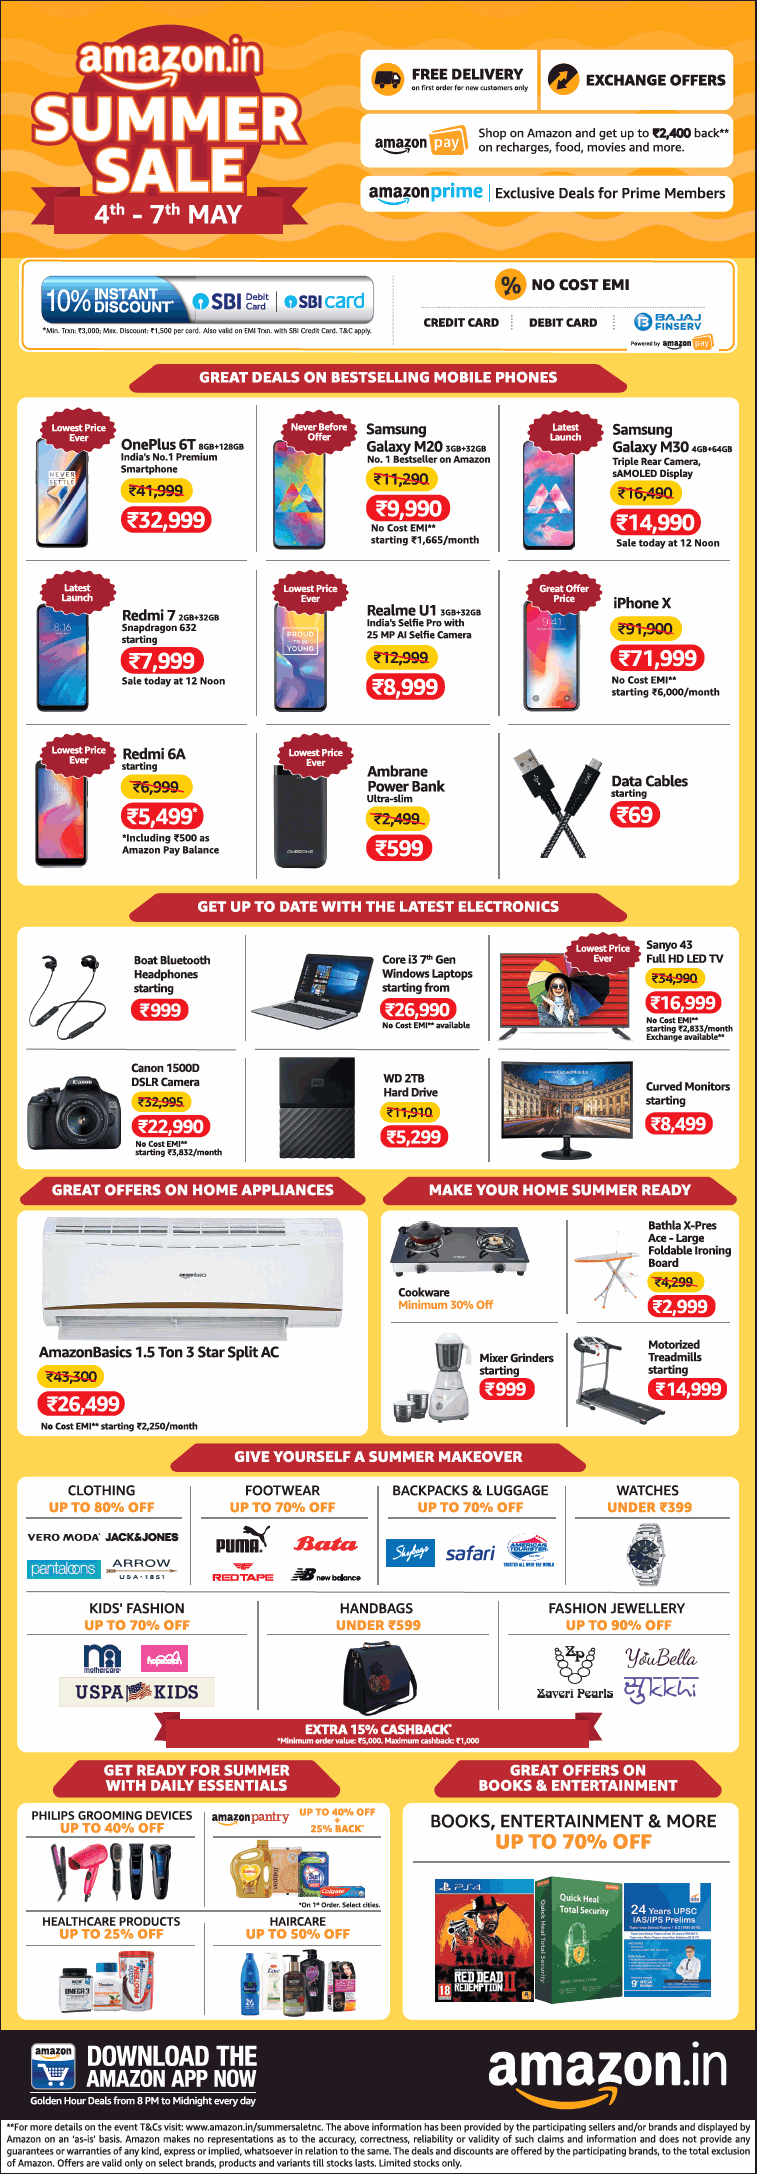 amazon-in-summer-sale-4th-to-7th-may-ad-times-of-india-delhi-04-05-2019.png